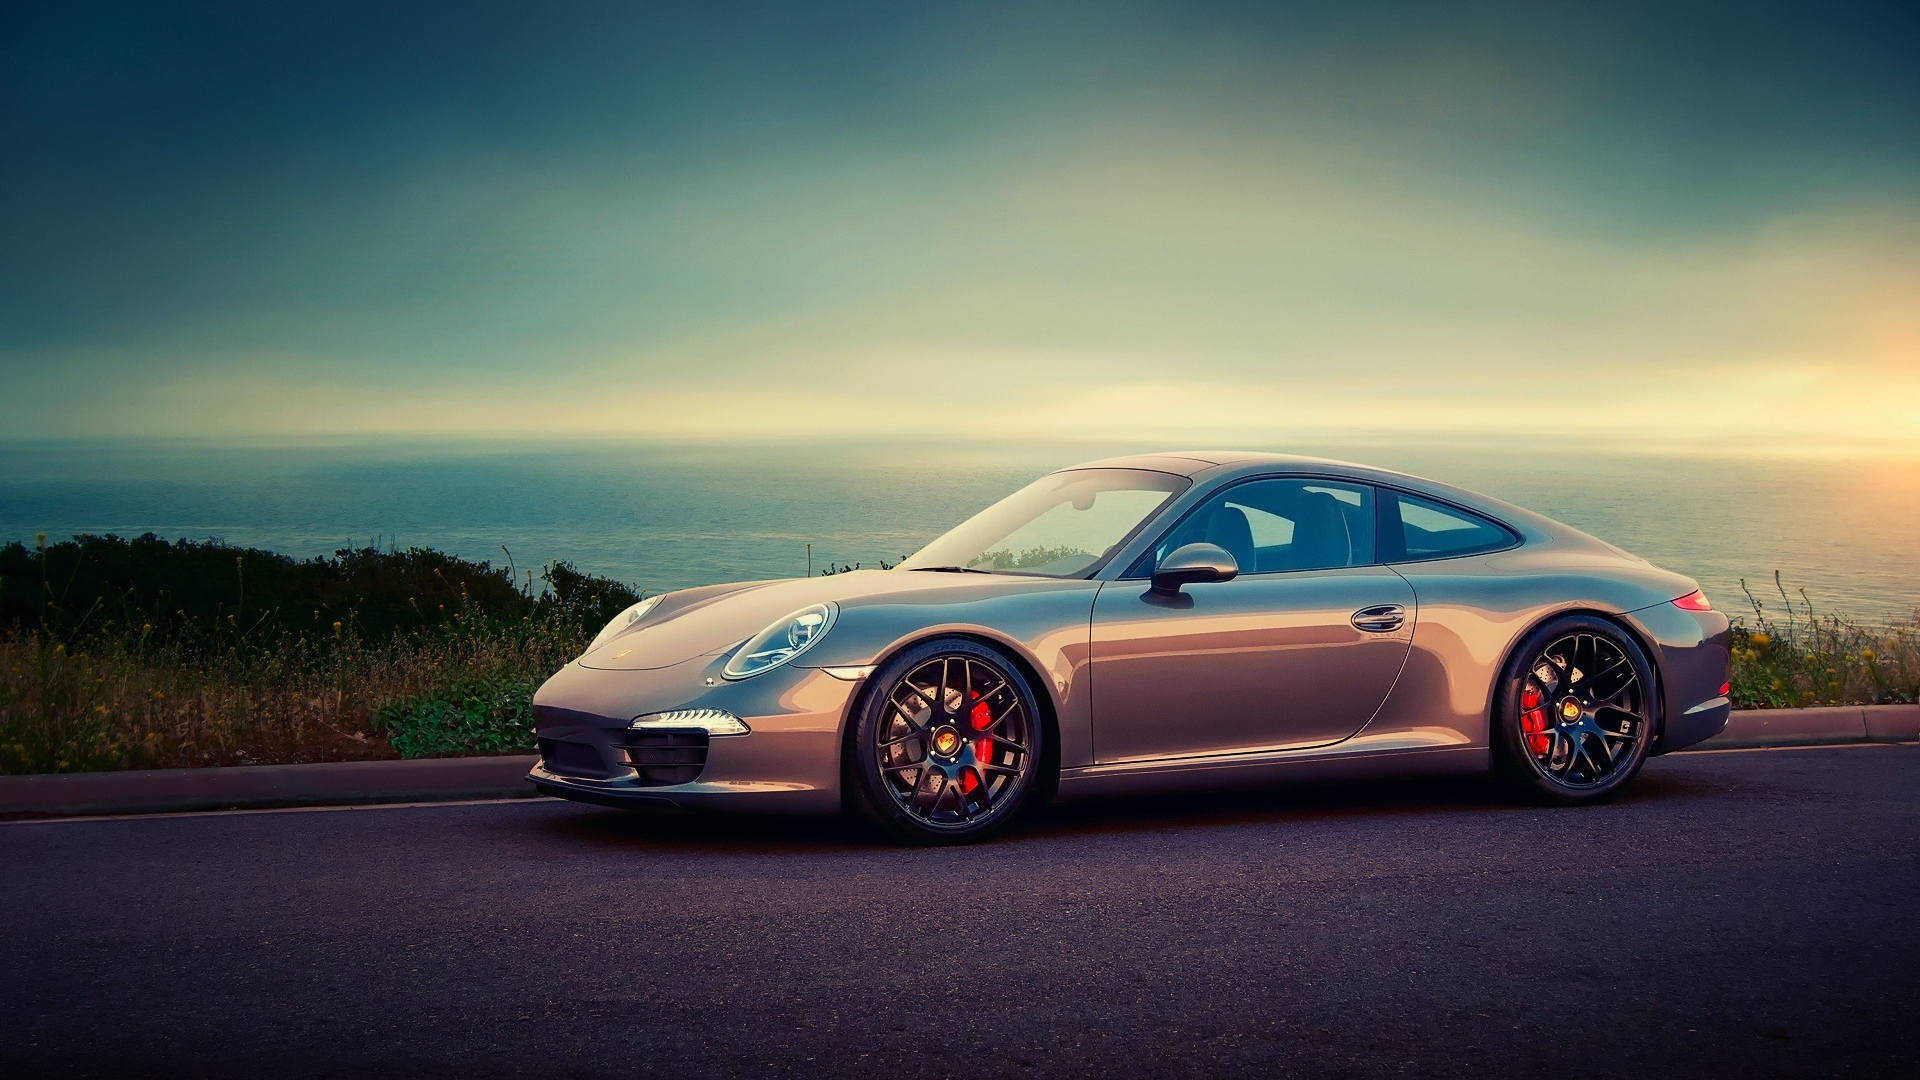 Porsche Hd Wallpapers 1080p: Download Wallpaper 1920x1080 Porsche, Beautiful, Asphalt